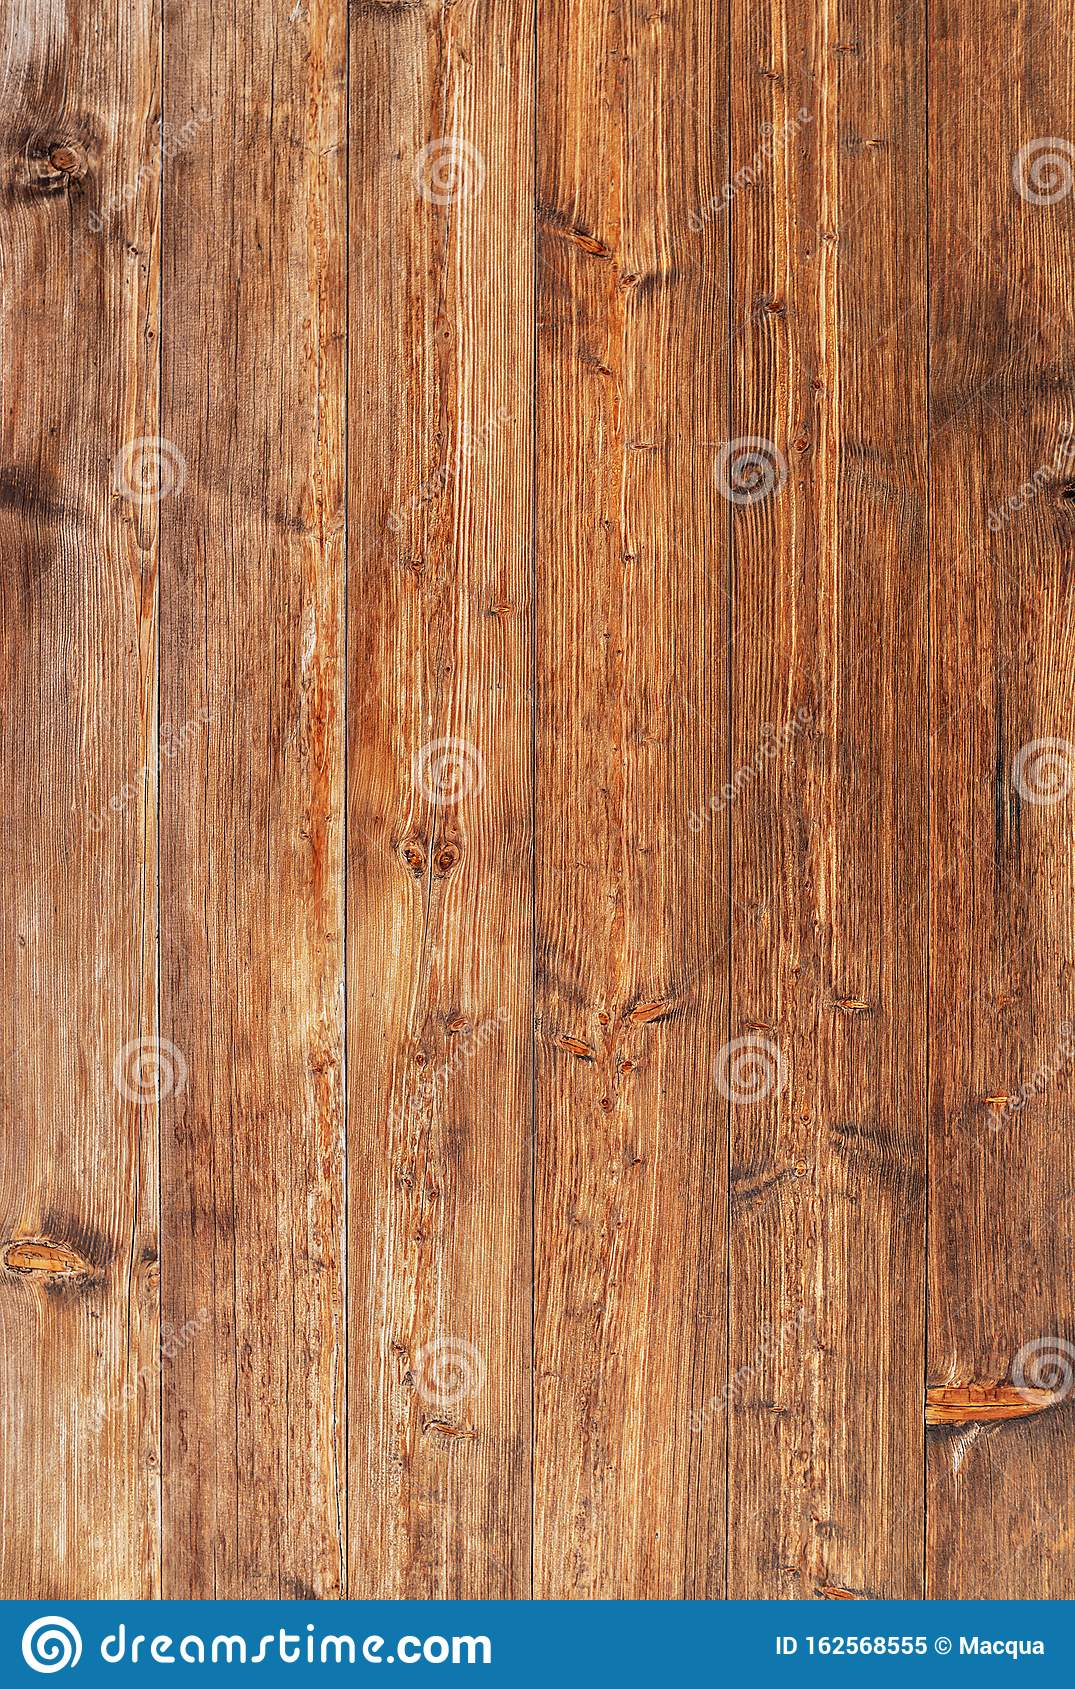 Top view of old wooden panels. Background. Old wood texture.